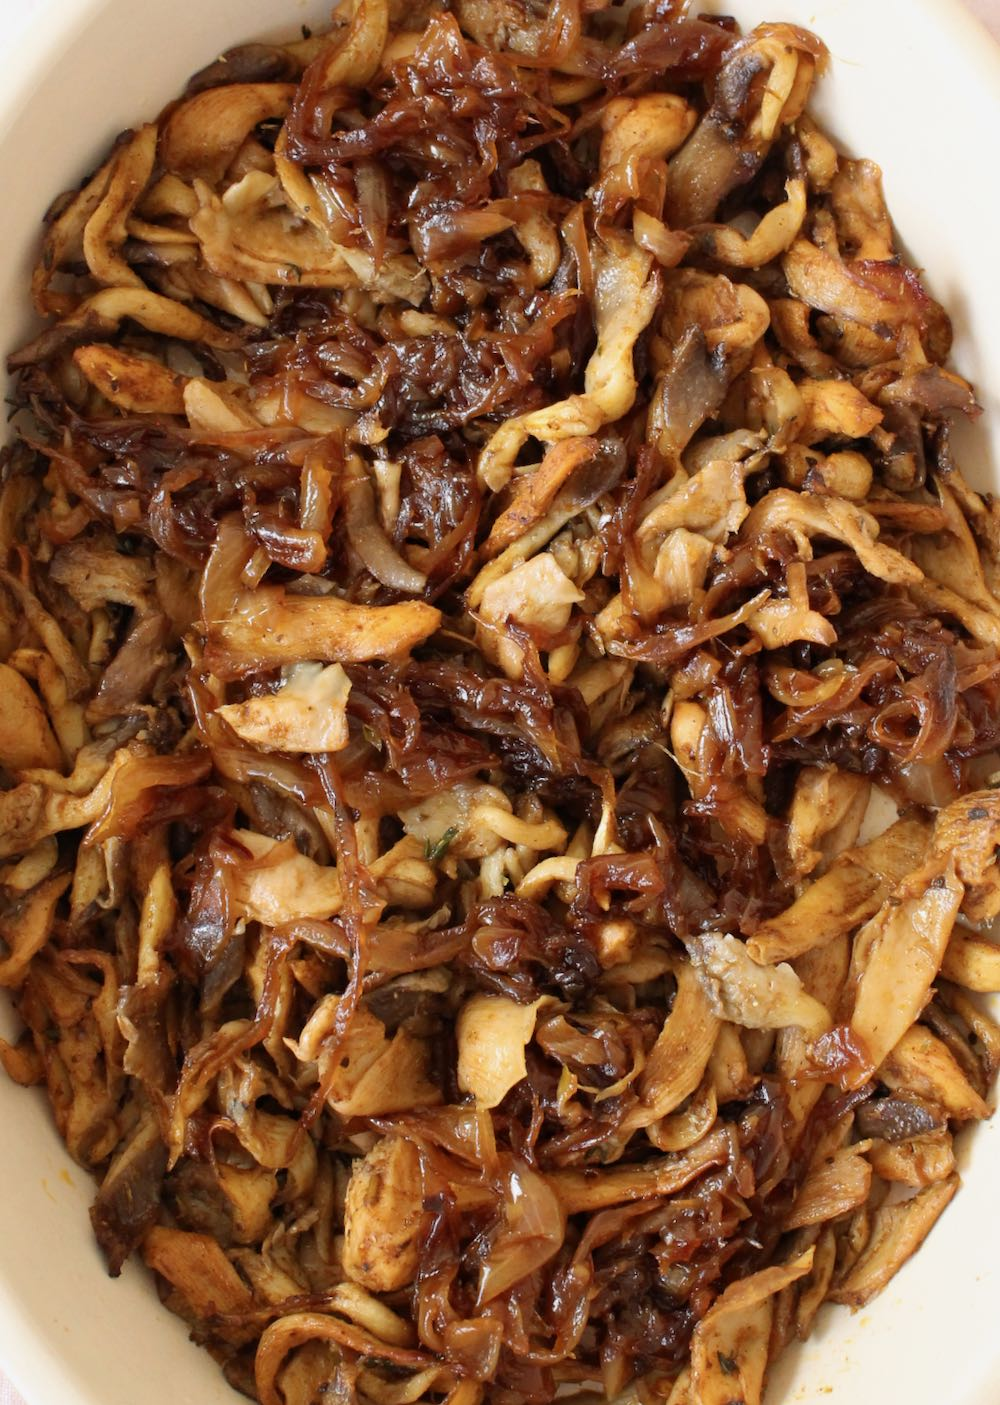 vegan gyros oyster mushrooms with caramelized onions